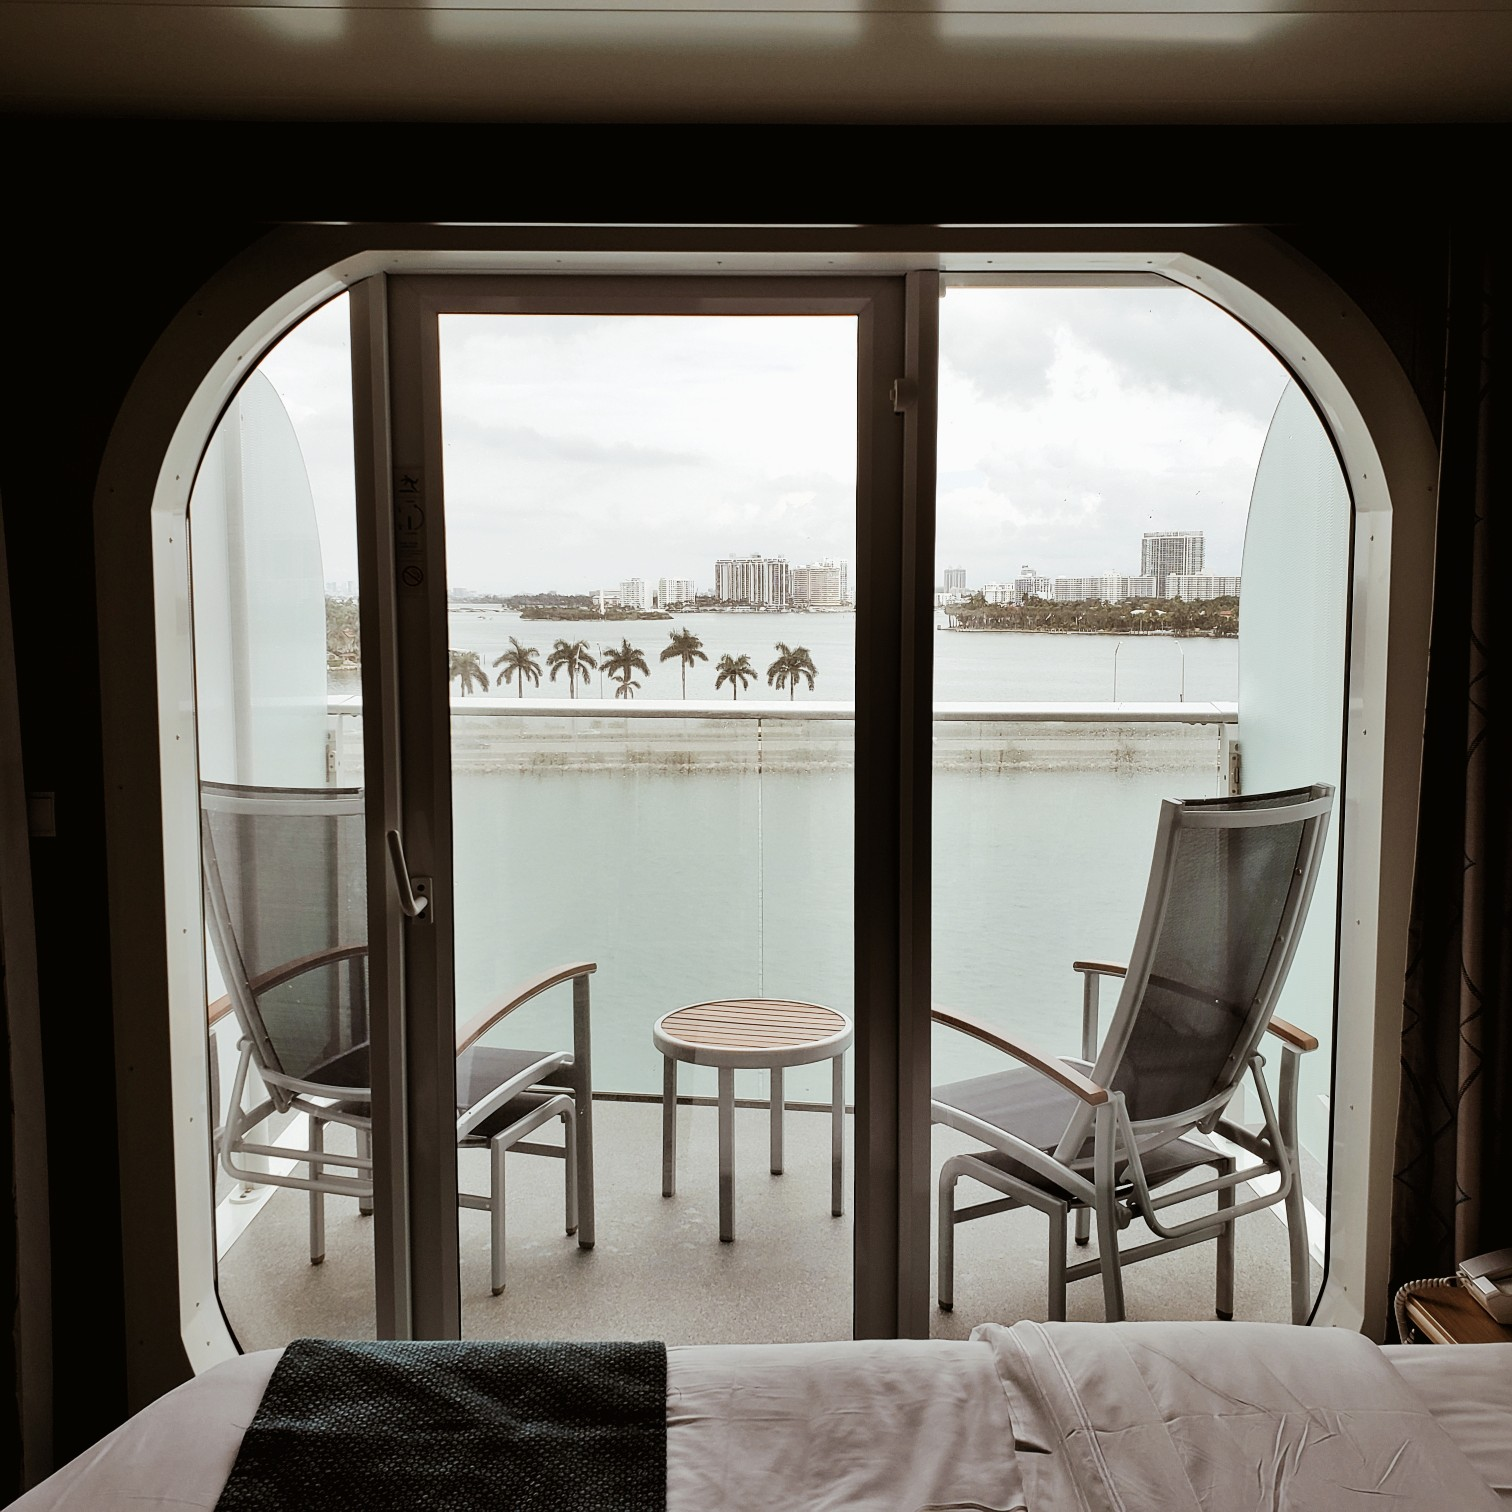 Royal Caribbean Symphony of the Seas Ocean view Stateroom Review Balcony